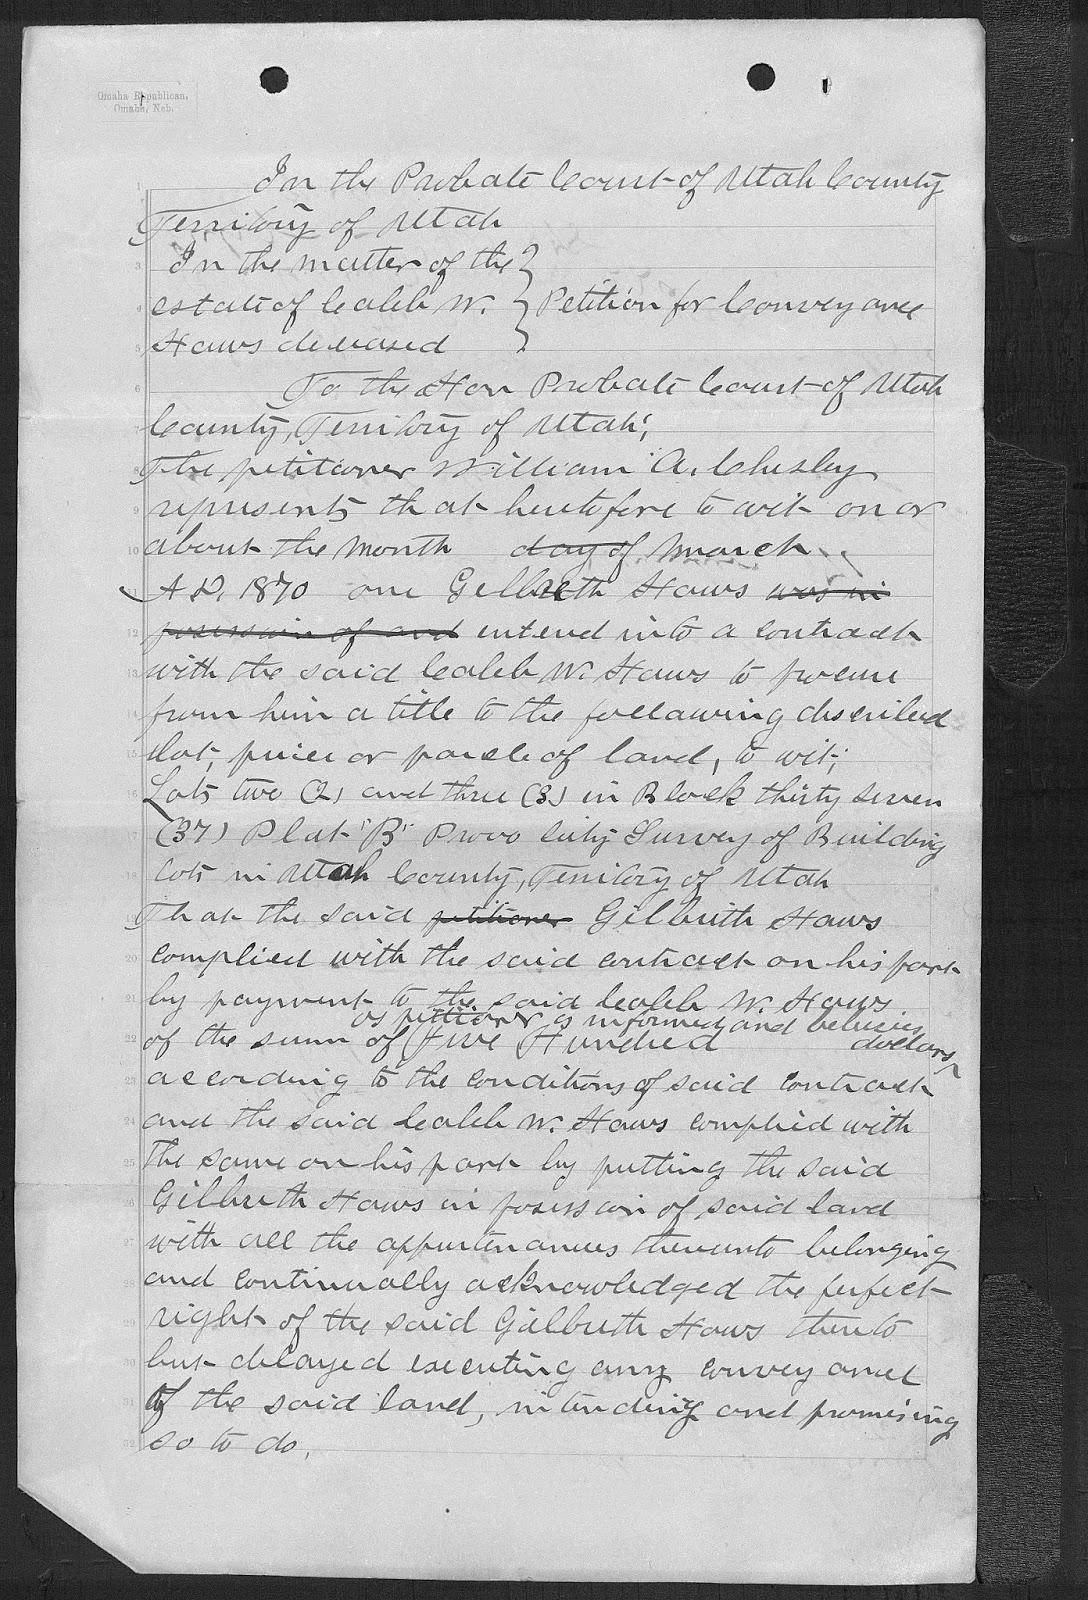 Genealogys star december 2014 this is a deed from the estate of caleb w haws to william a chesley based on william a chesleys petitions for the execution of the deed dailygadgetfo Gallery